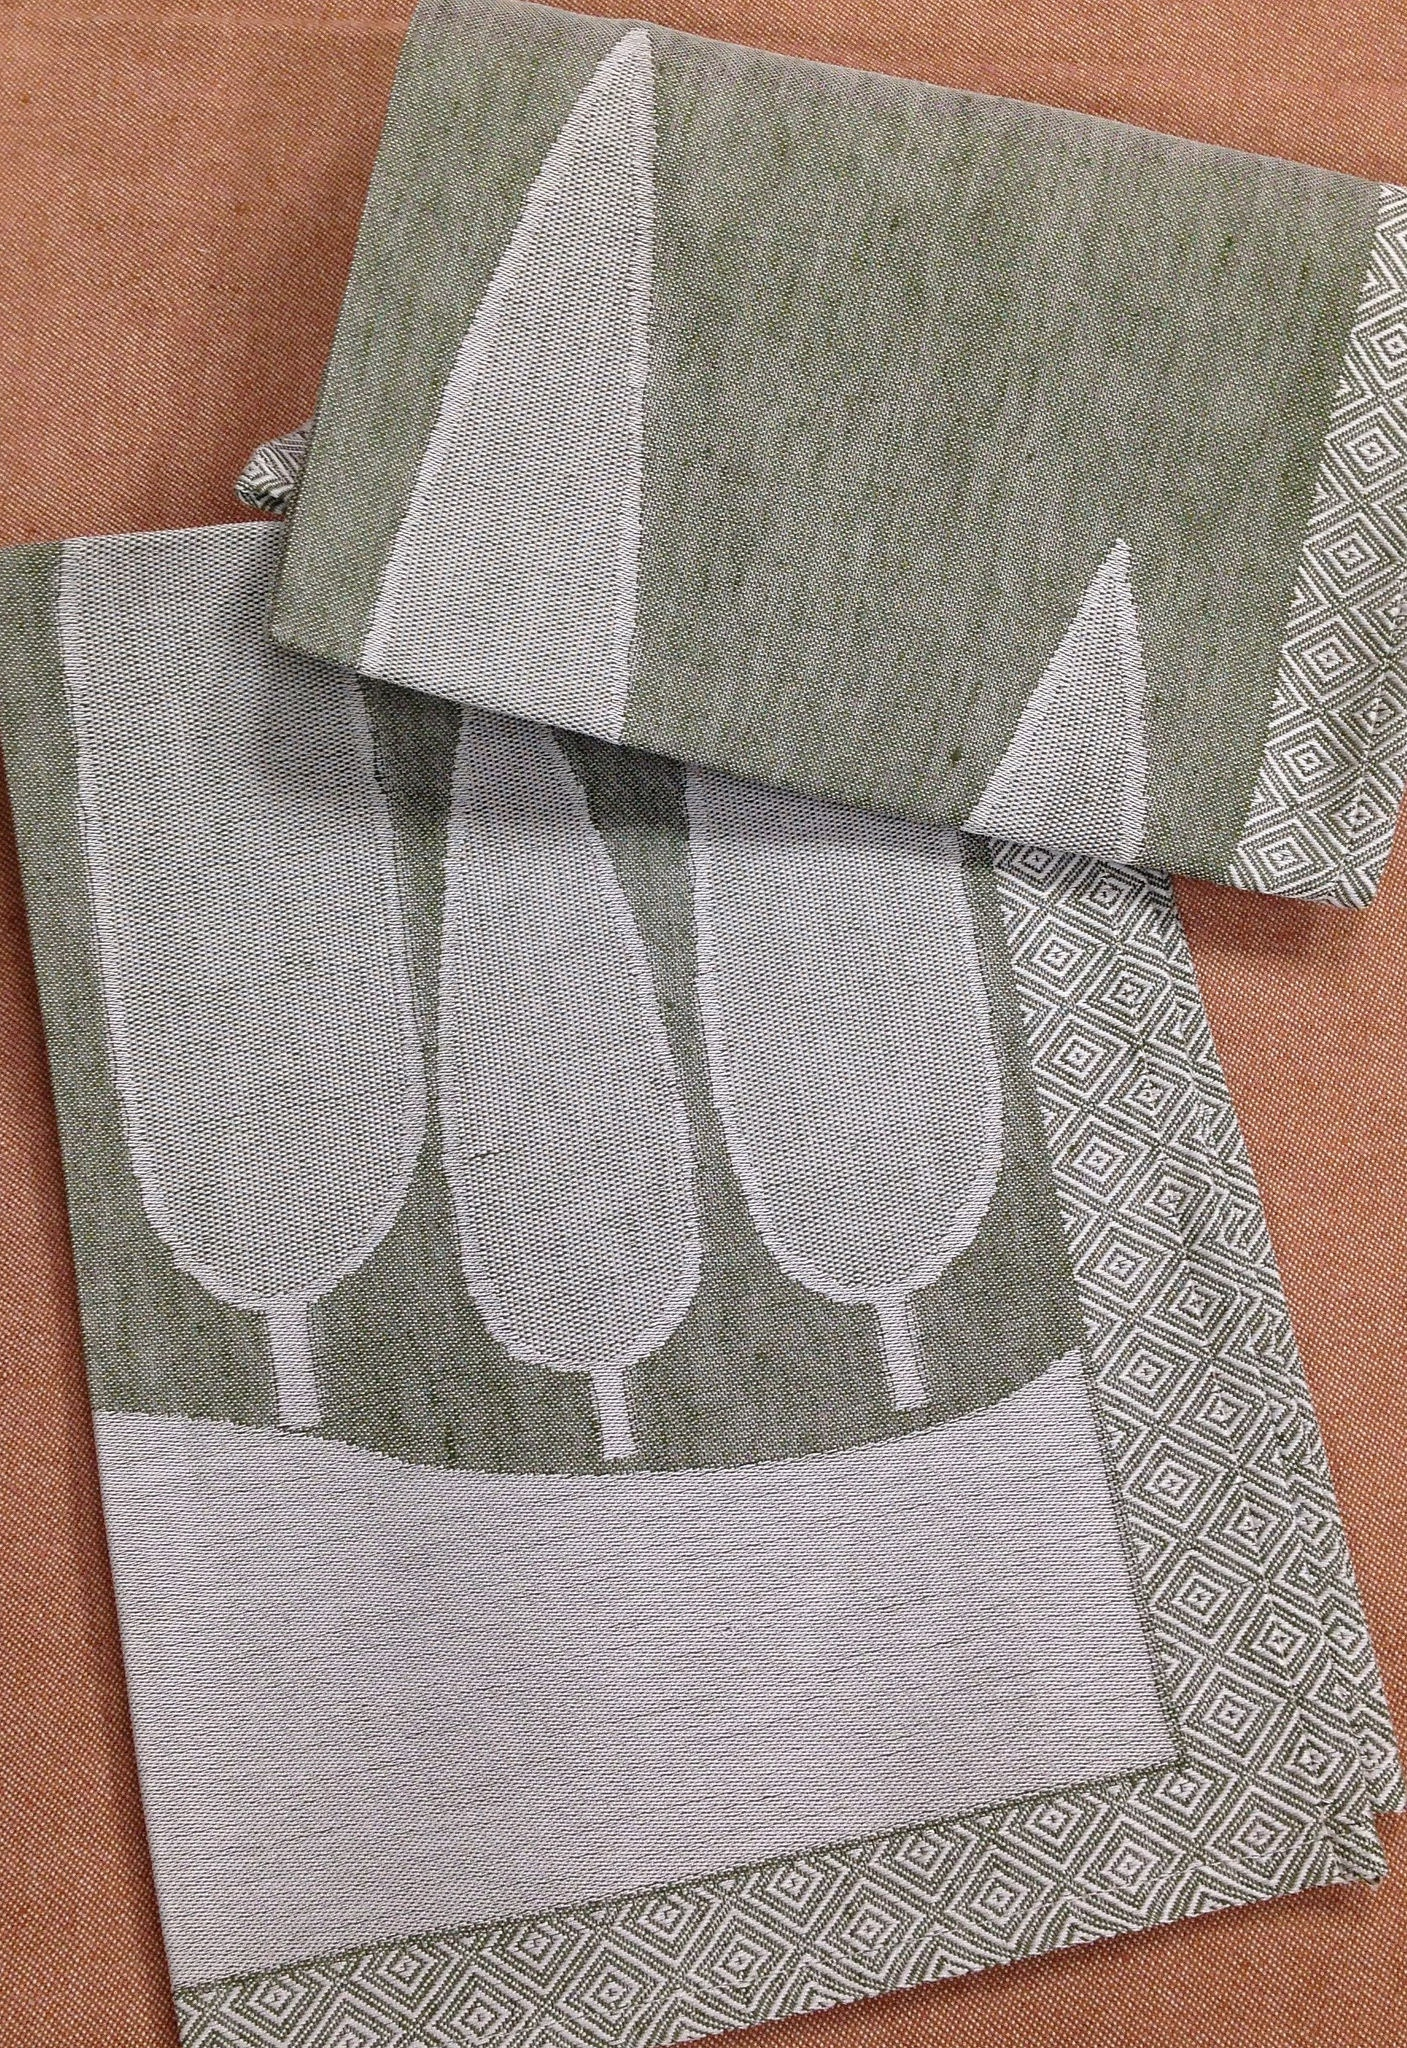 Jacquard Countryside Kitchen Towels Italian Bed Bath And